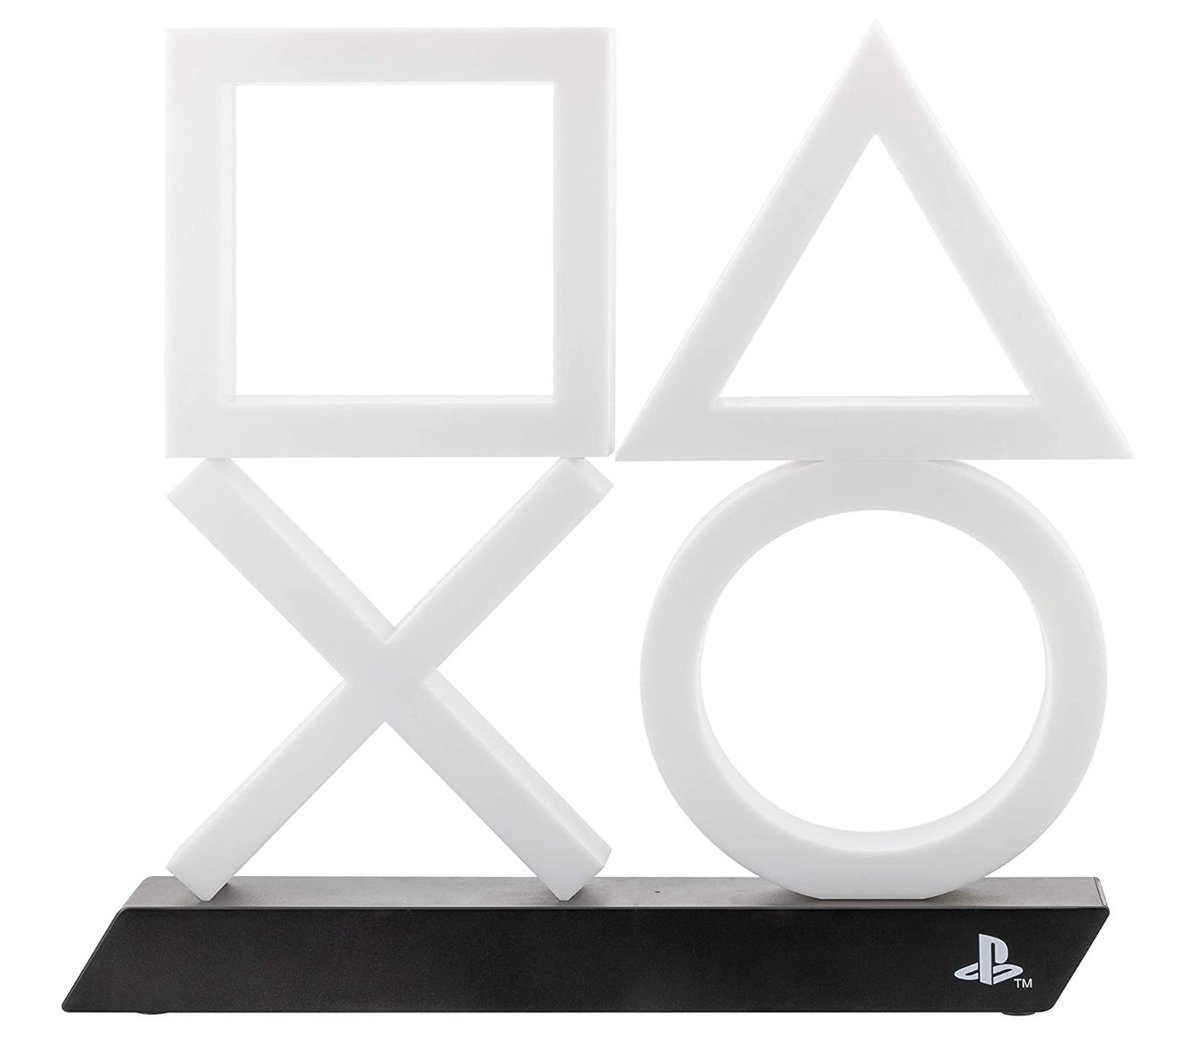 PS5 XL Icons Light  Officially Licensed  Was $39.99 Now $31.99 Amazon